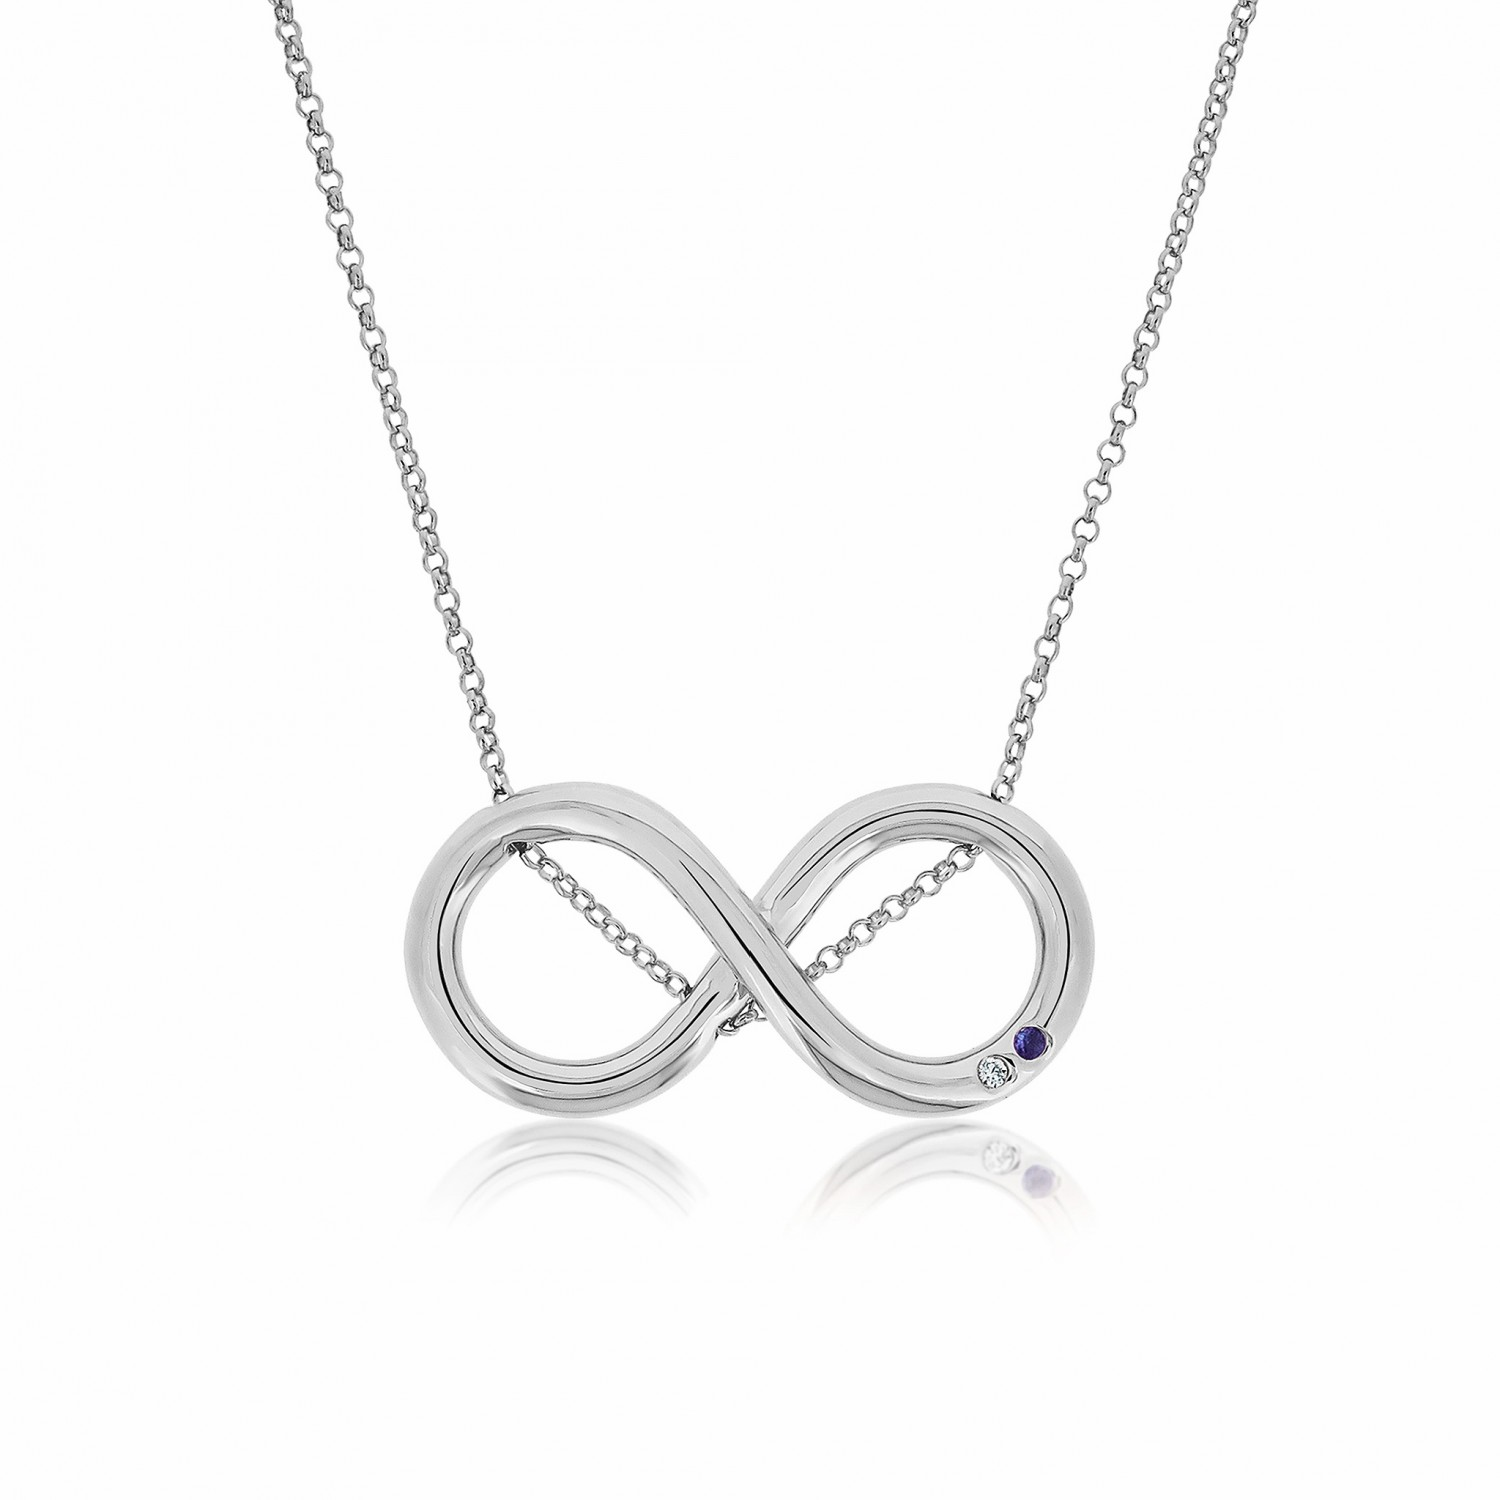 Twine Infinity Silver Necklace